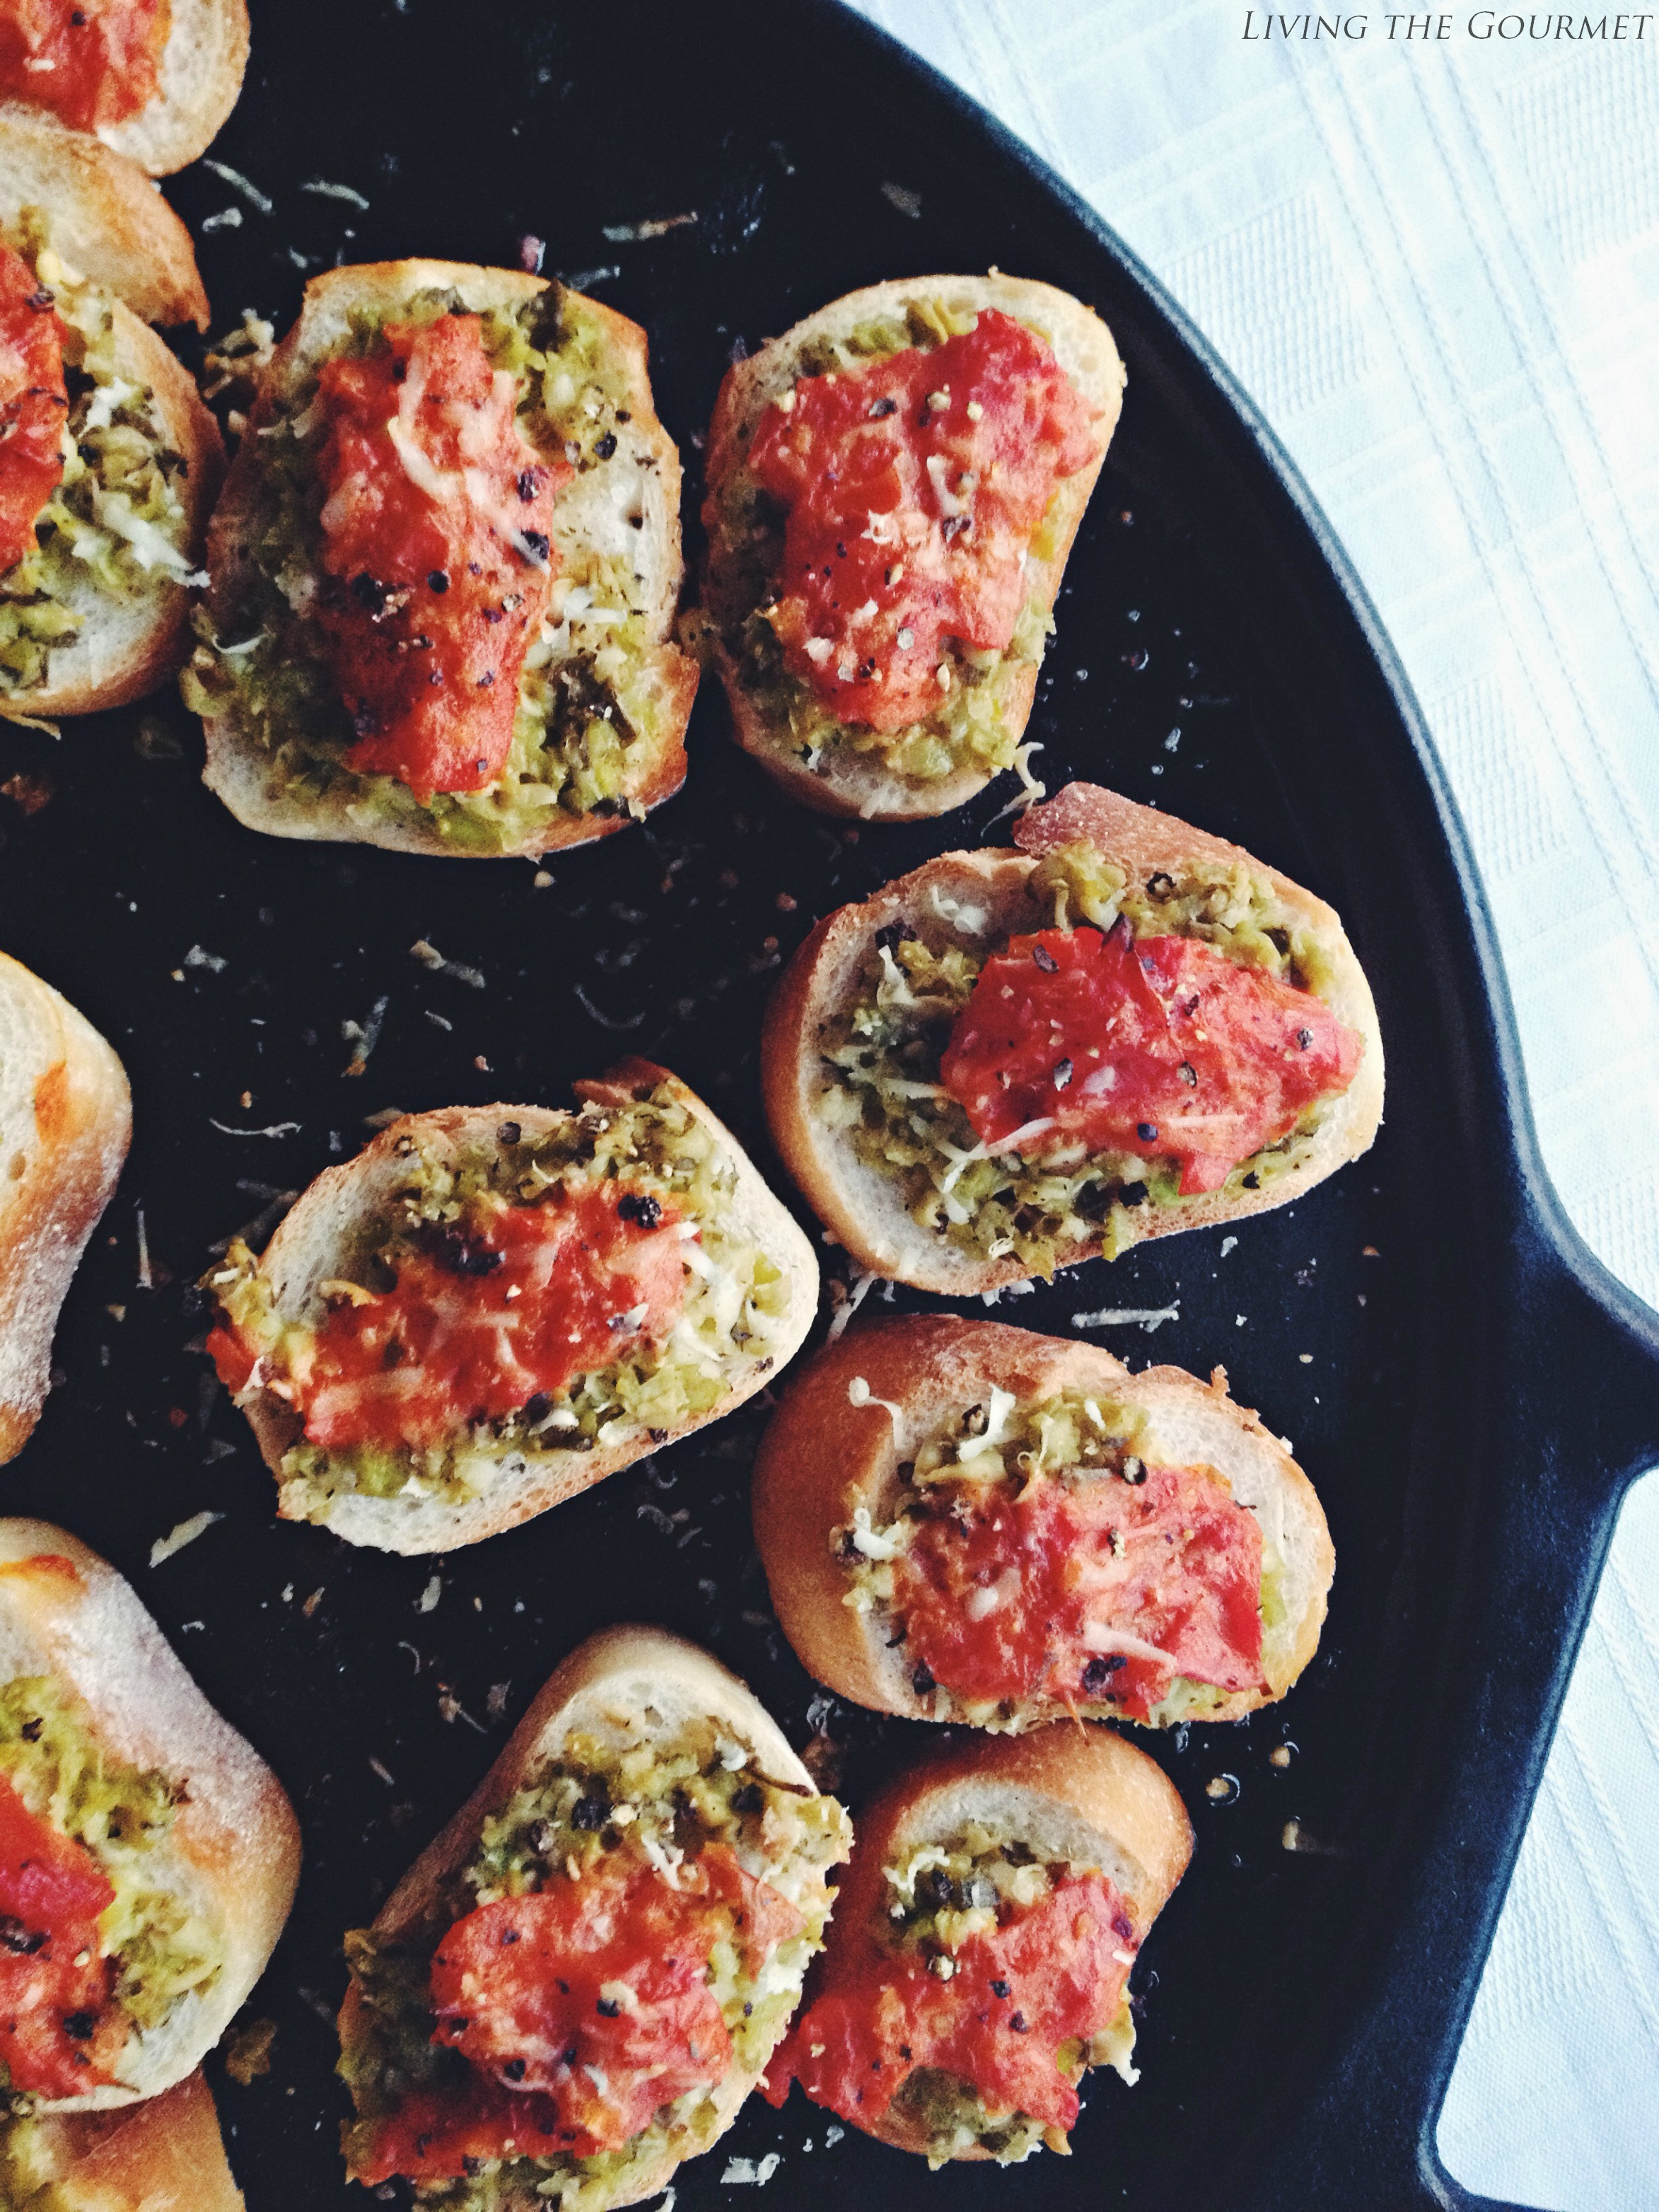 Living the Gourmet: Fava Bean and Tomato Crostini